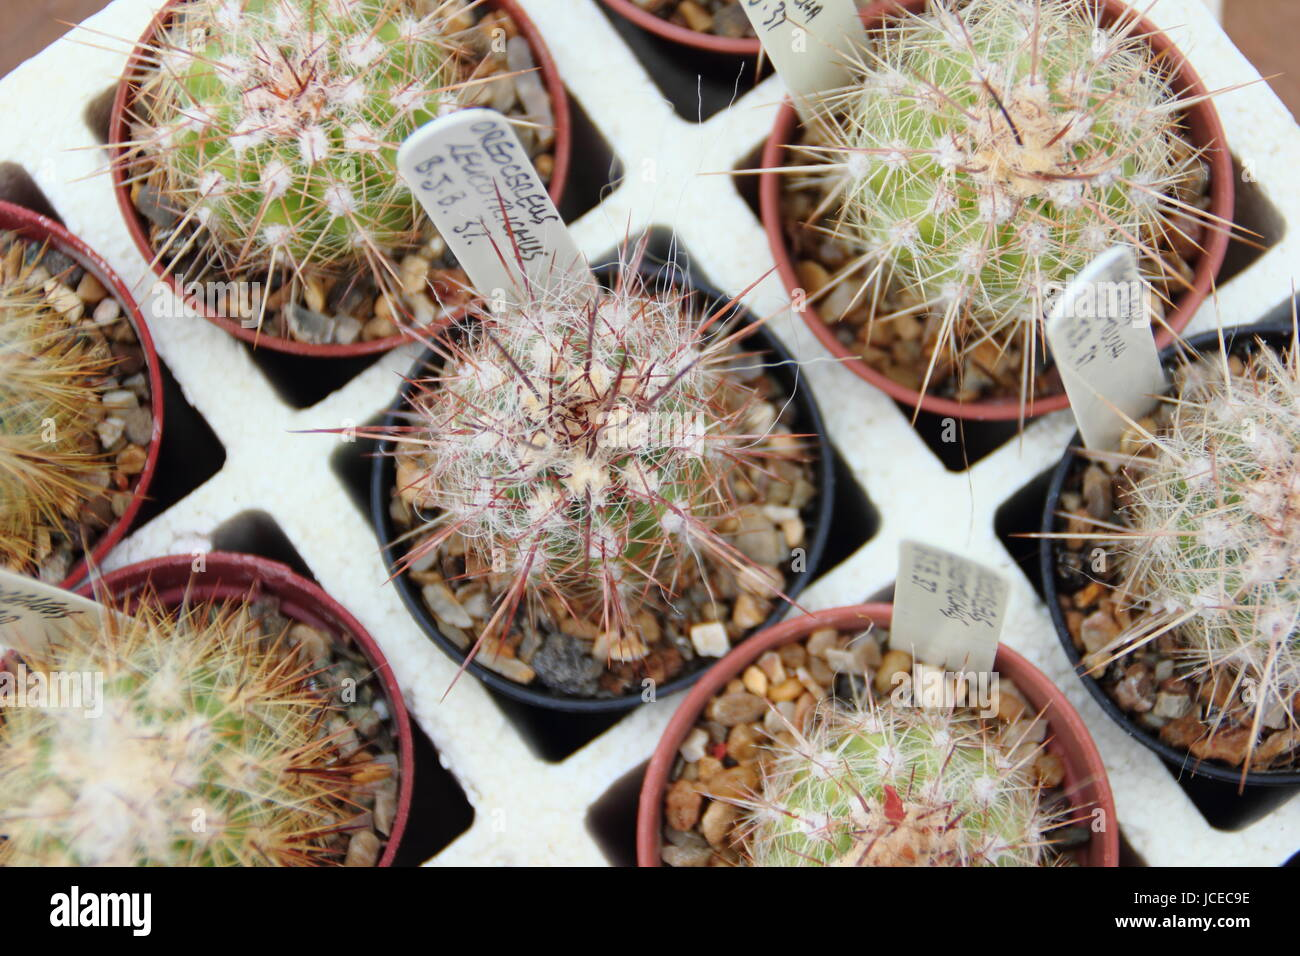 Cactus Houseplants For Sale At An Annual Cactus Show Featuring